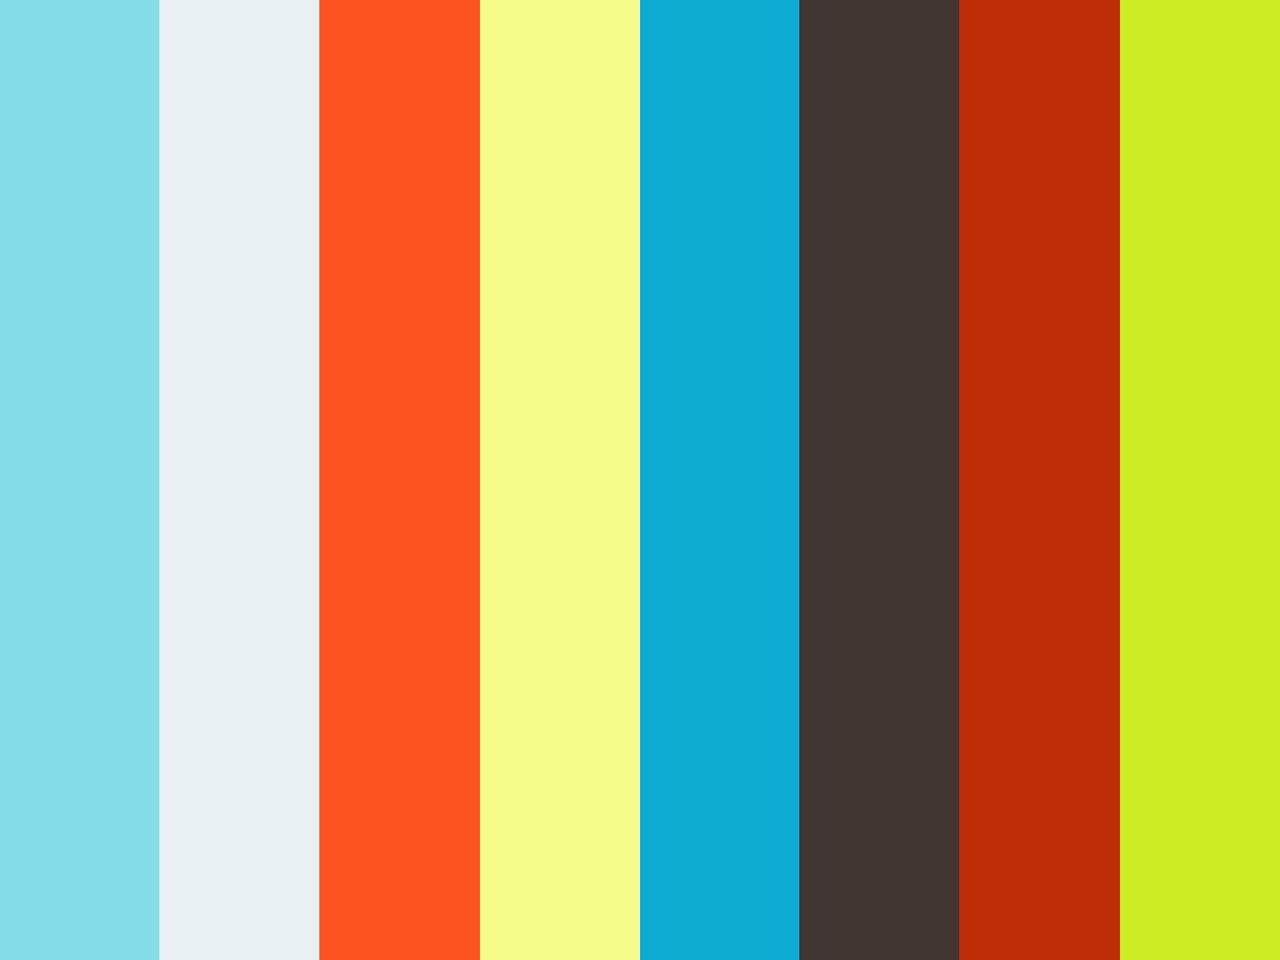 Three-Dimensional Modelling for Crohn's Fistula-in-Ano: A Novel, Interactive Approach 2017